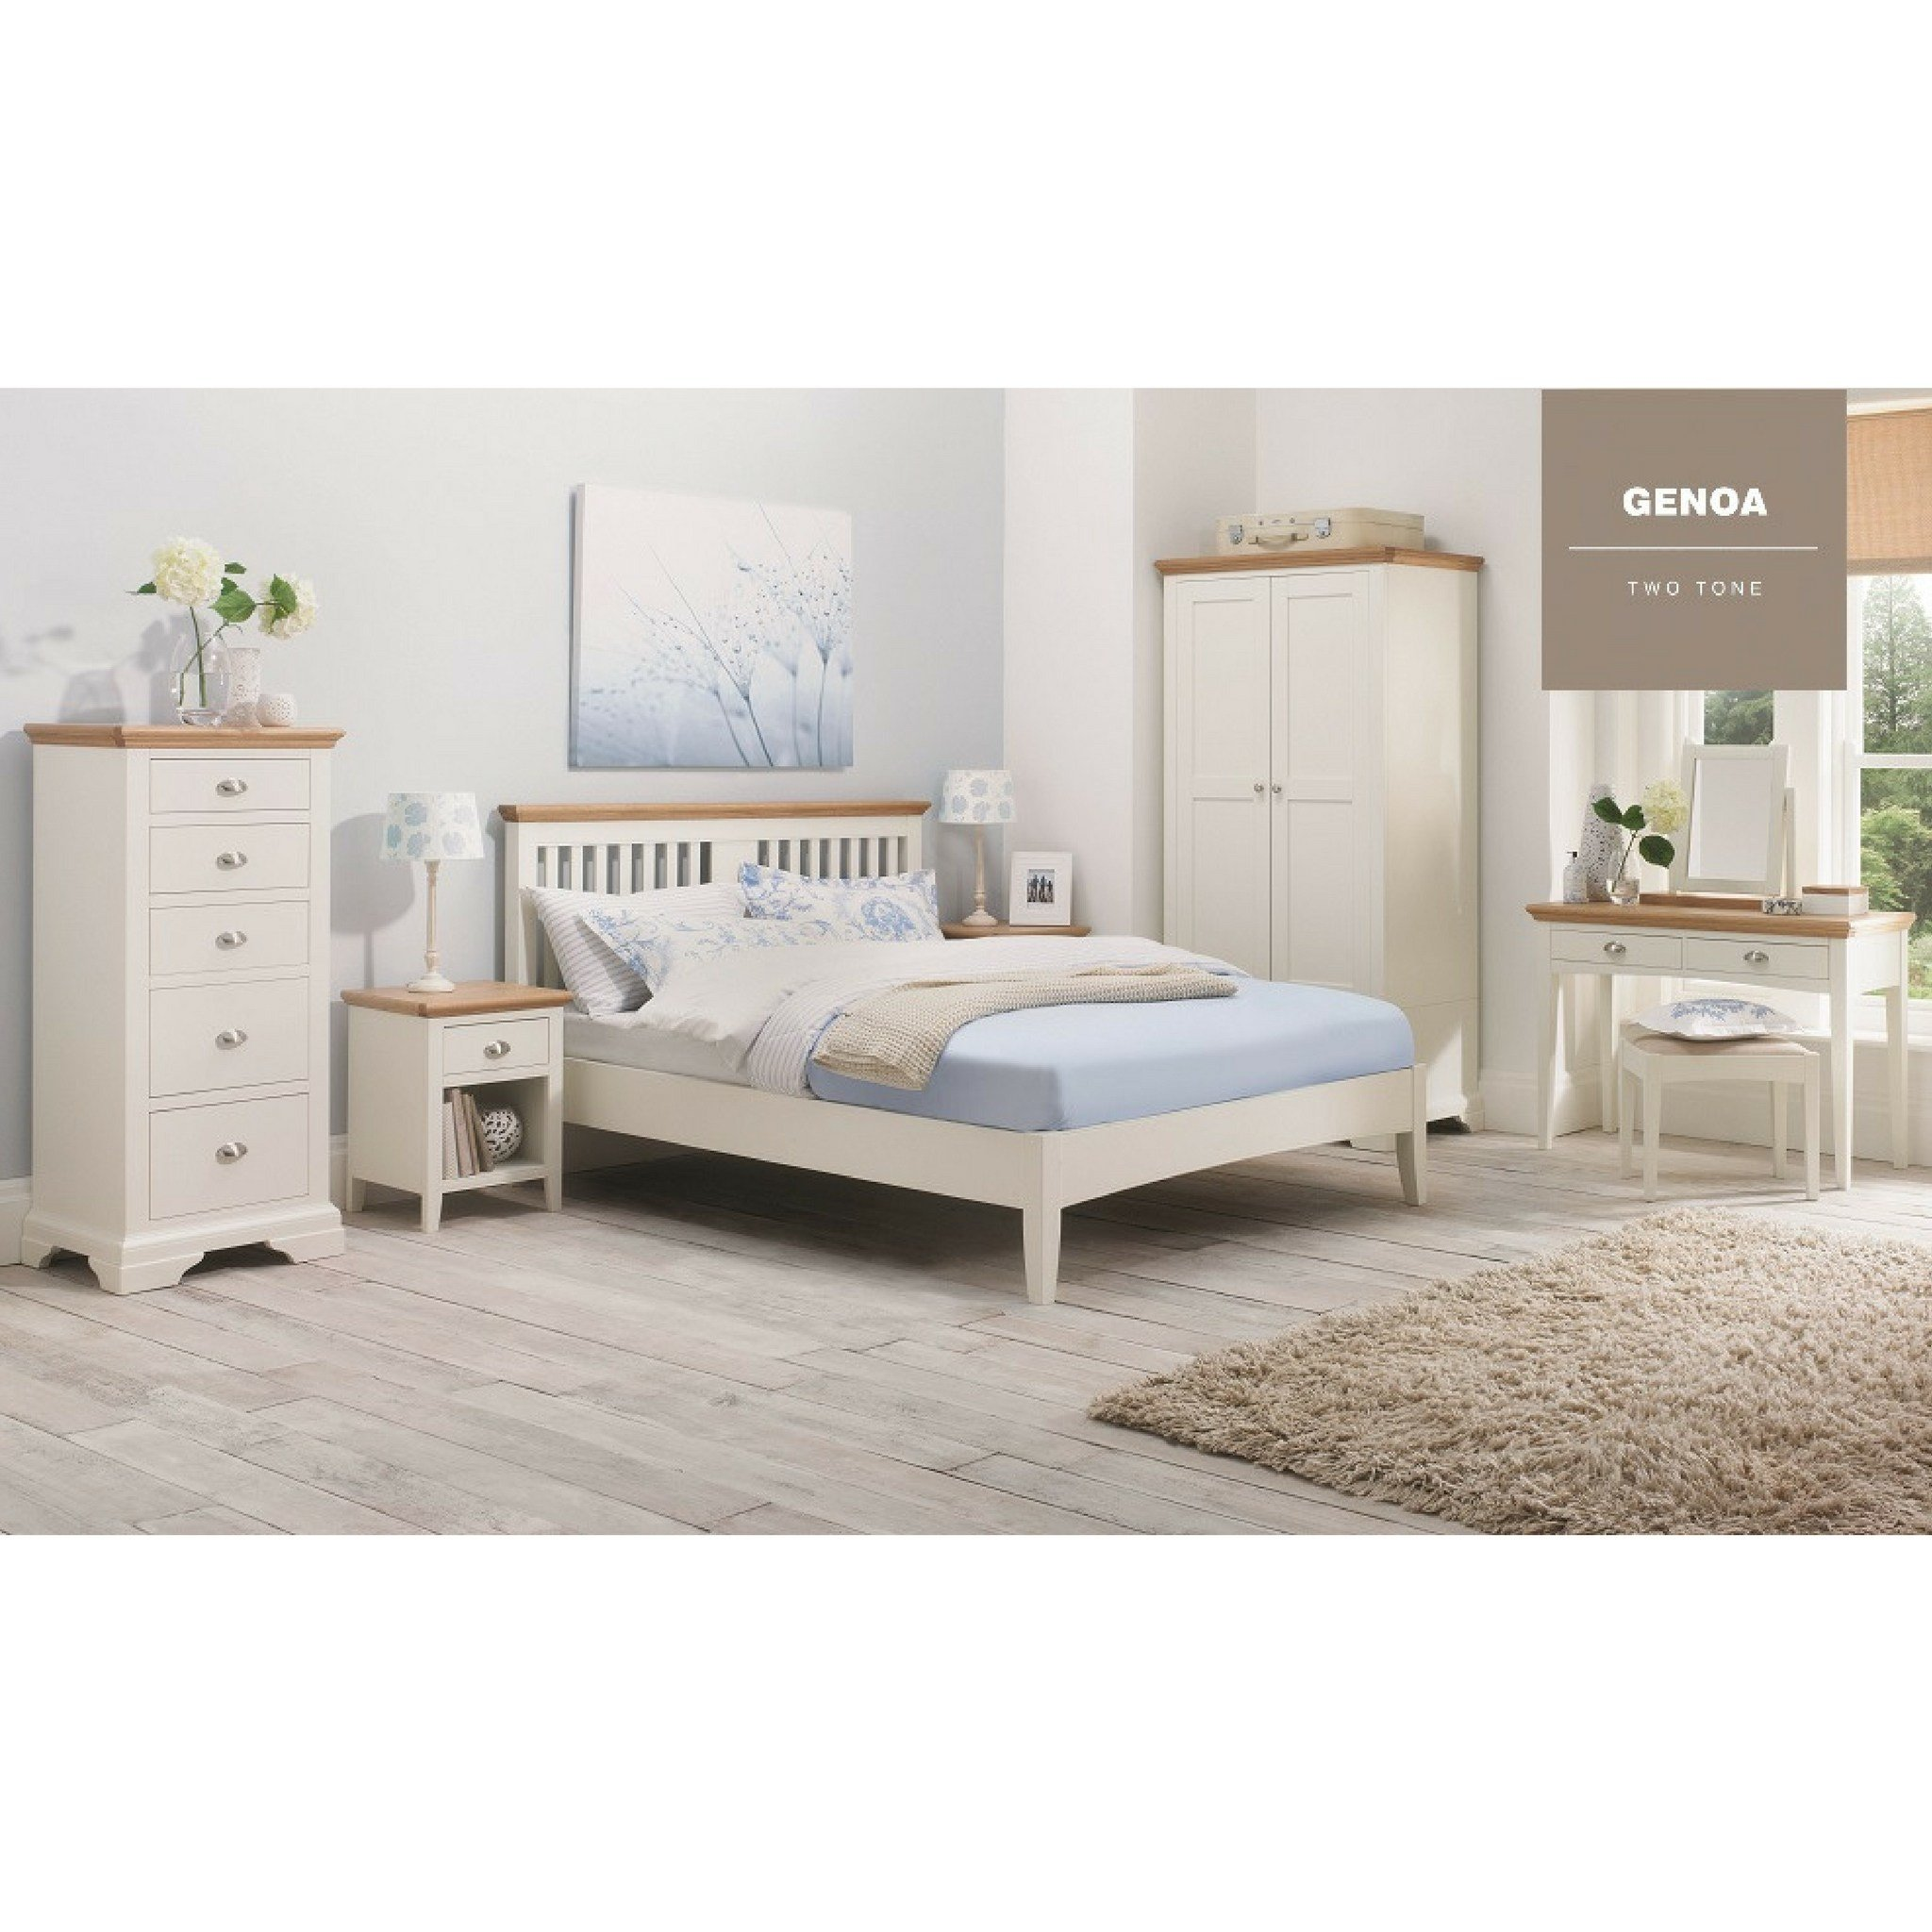 Best Genoa Bedroom Furniture Www Indiepedia Org With Pictures